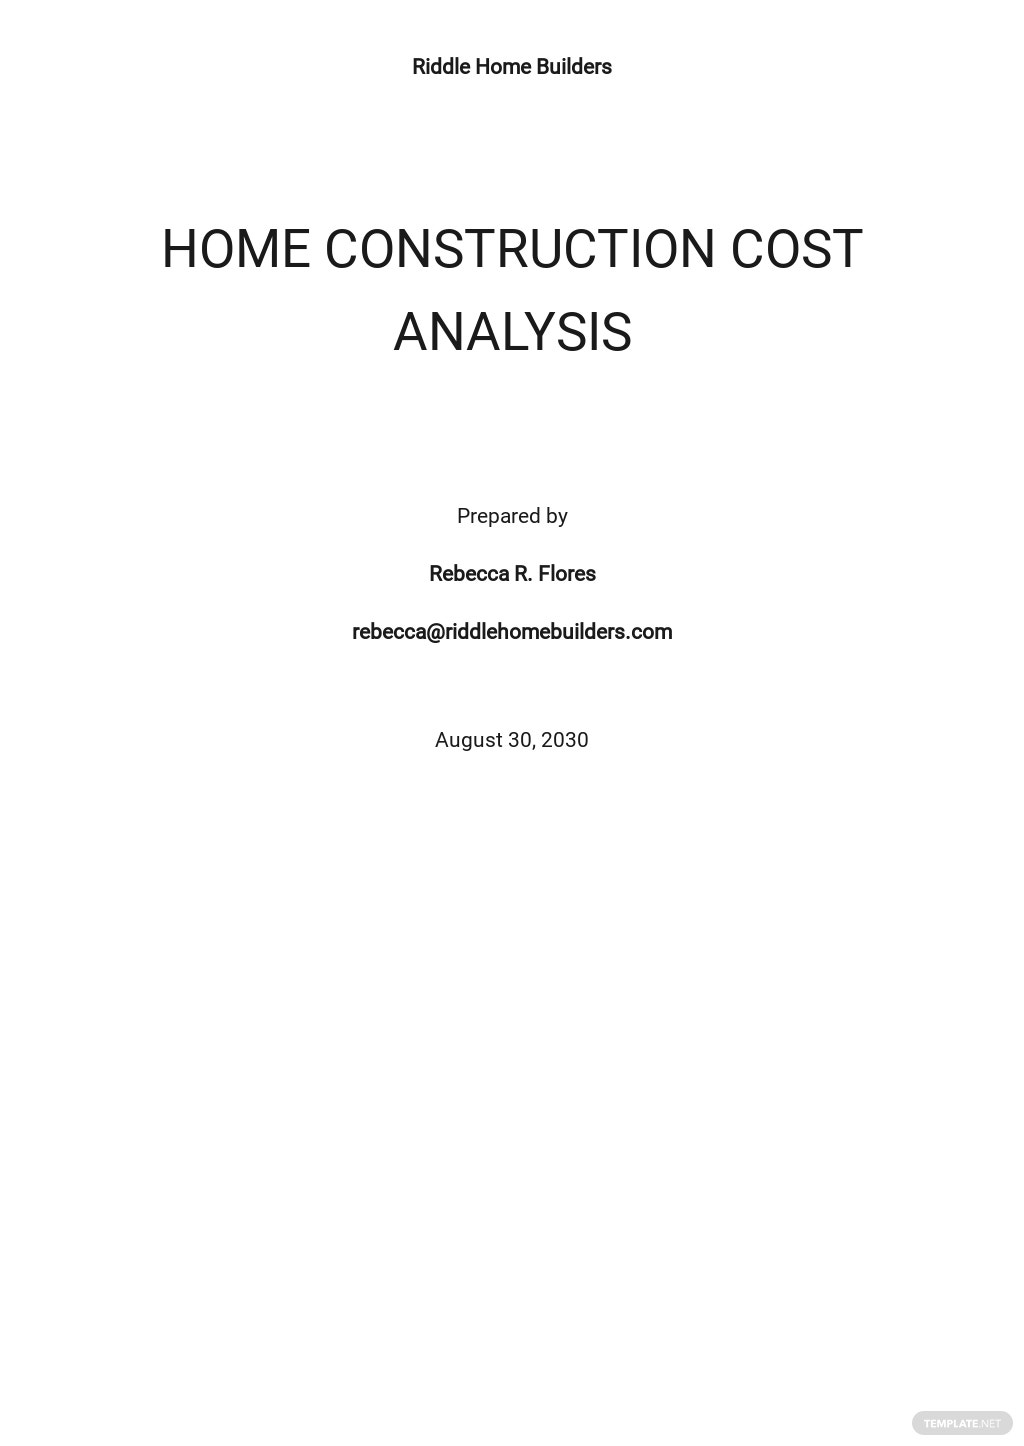 Sample Home Construction Cost Analysis Template